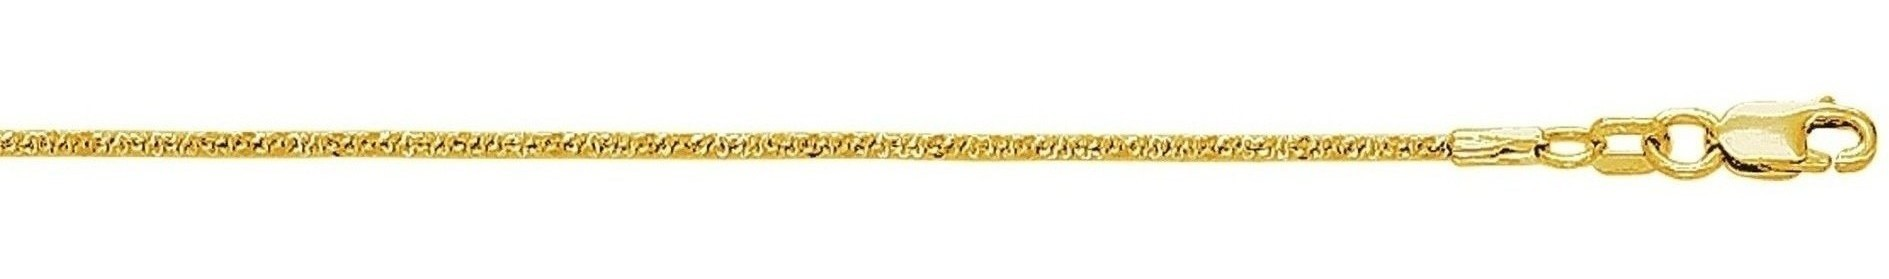 "10"" 10K Yellow Gold 1.5mm (0.06"") Polished Diamond Cut Sparkle Chain w/ Lobster Clasp"